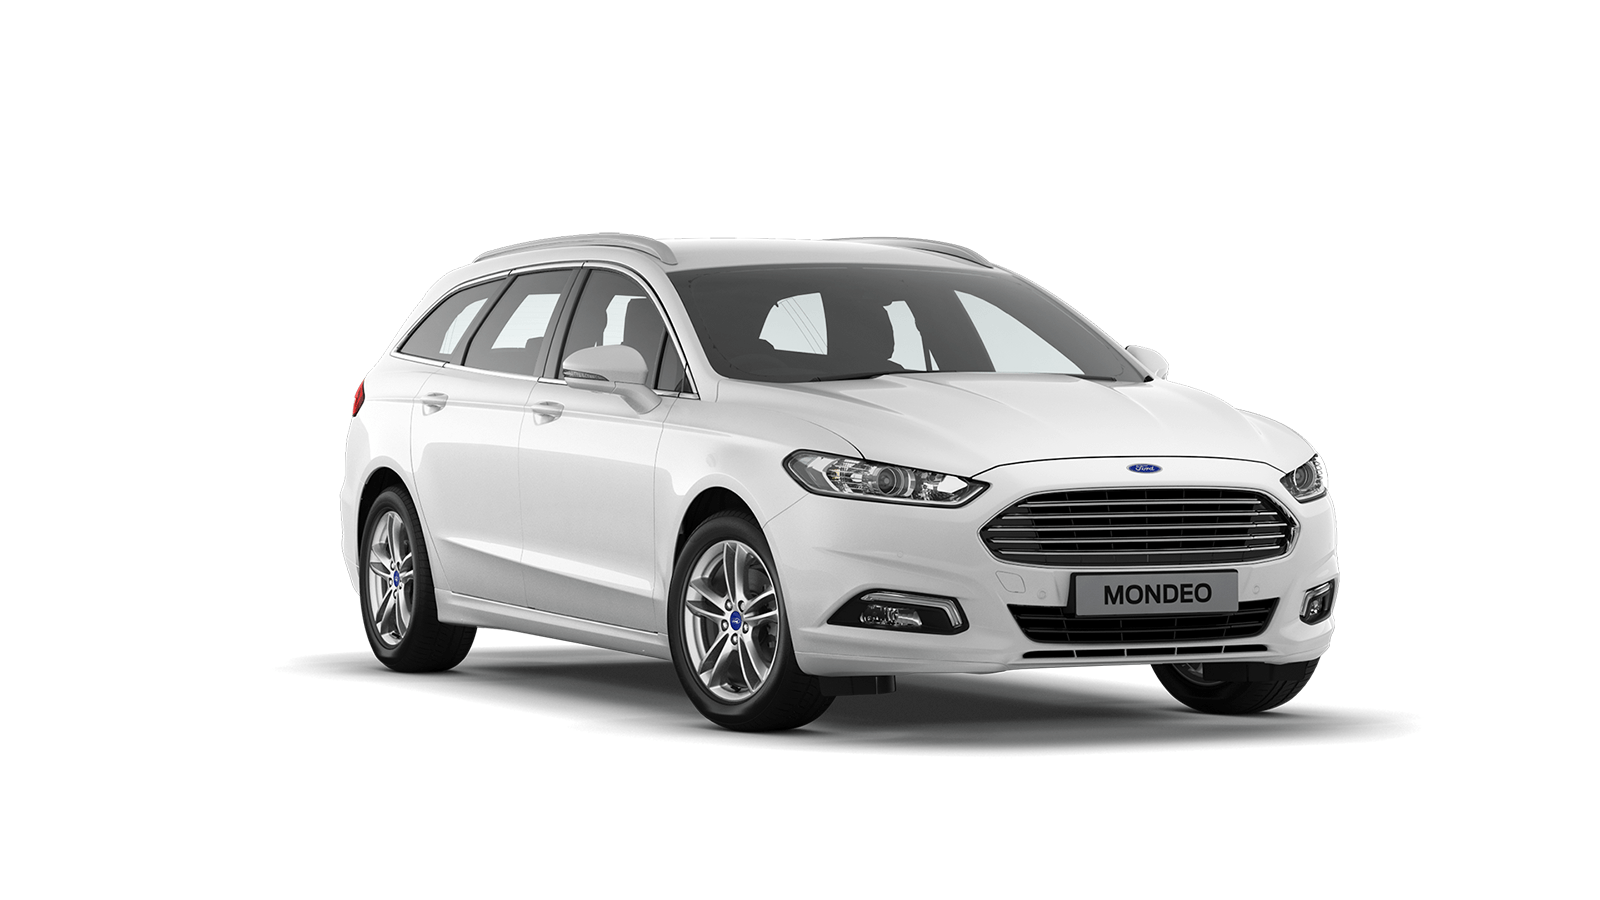 https://www.dealerinternet.co.uk/images/MONDEO%20(CD345)/2018.75/Estate/ZetecEdition/FROZEN-WHITE.png